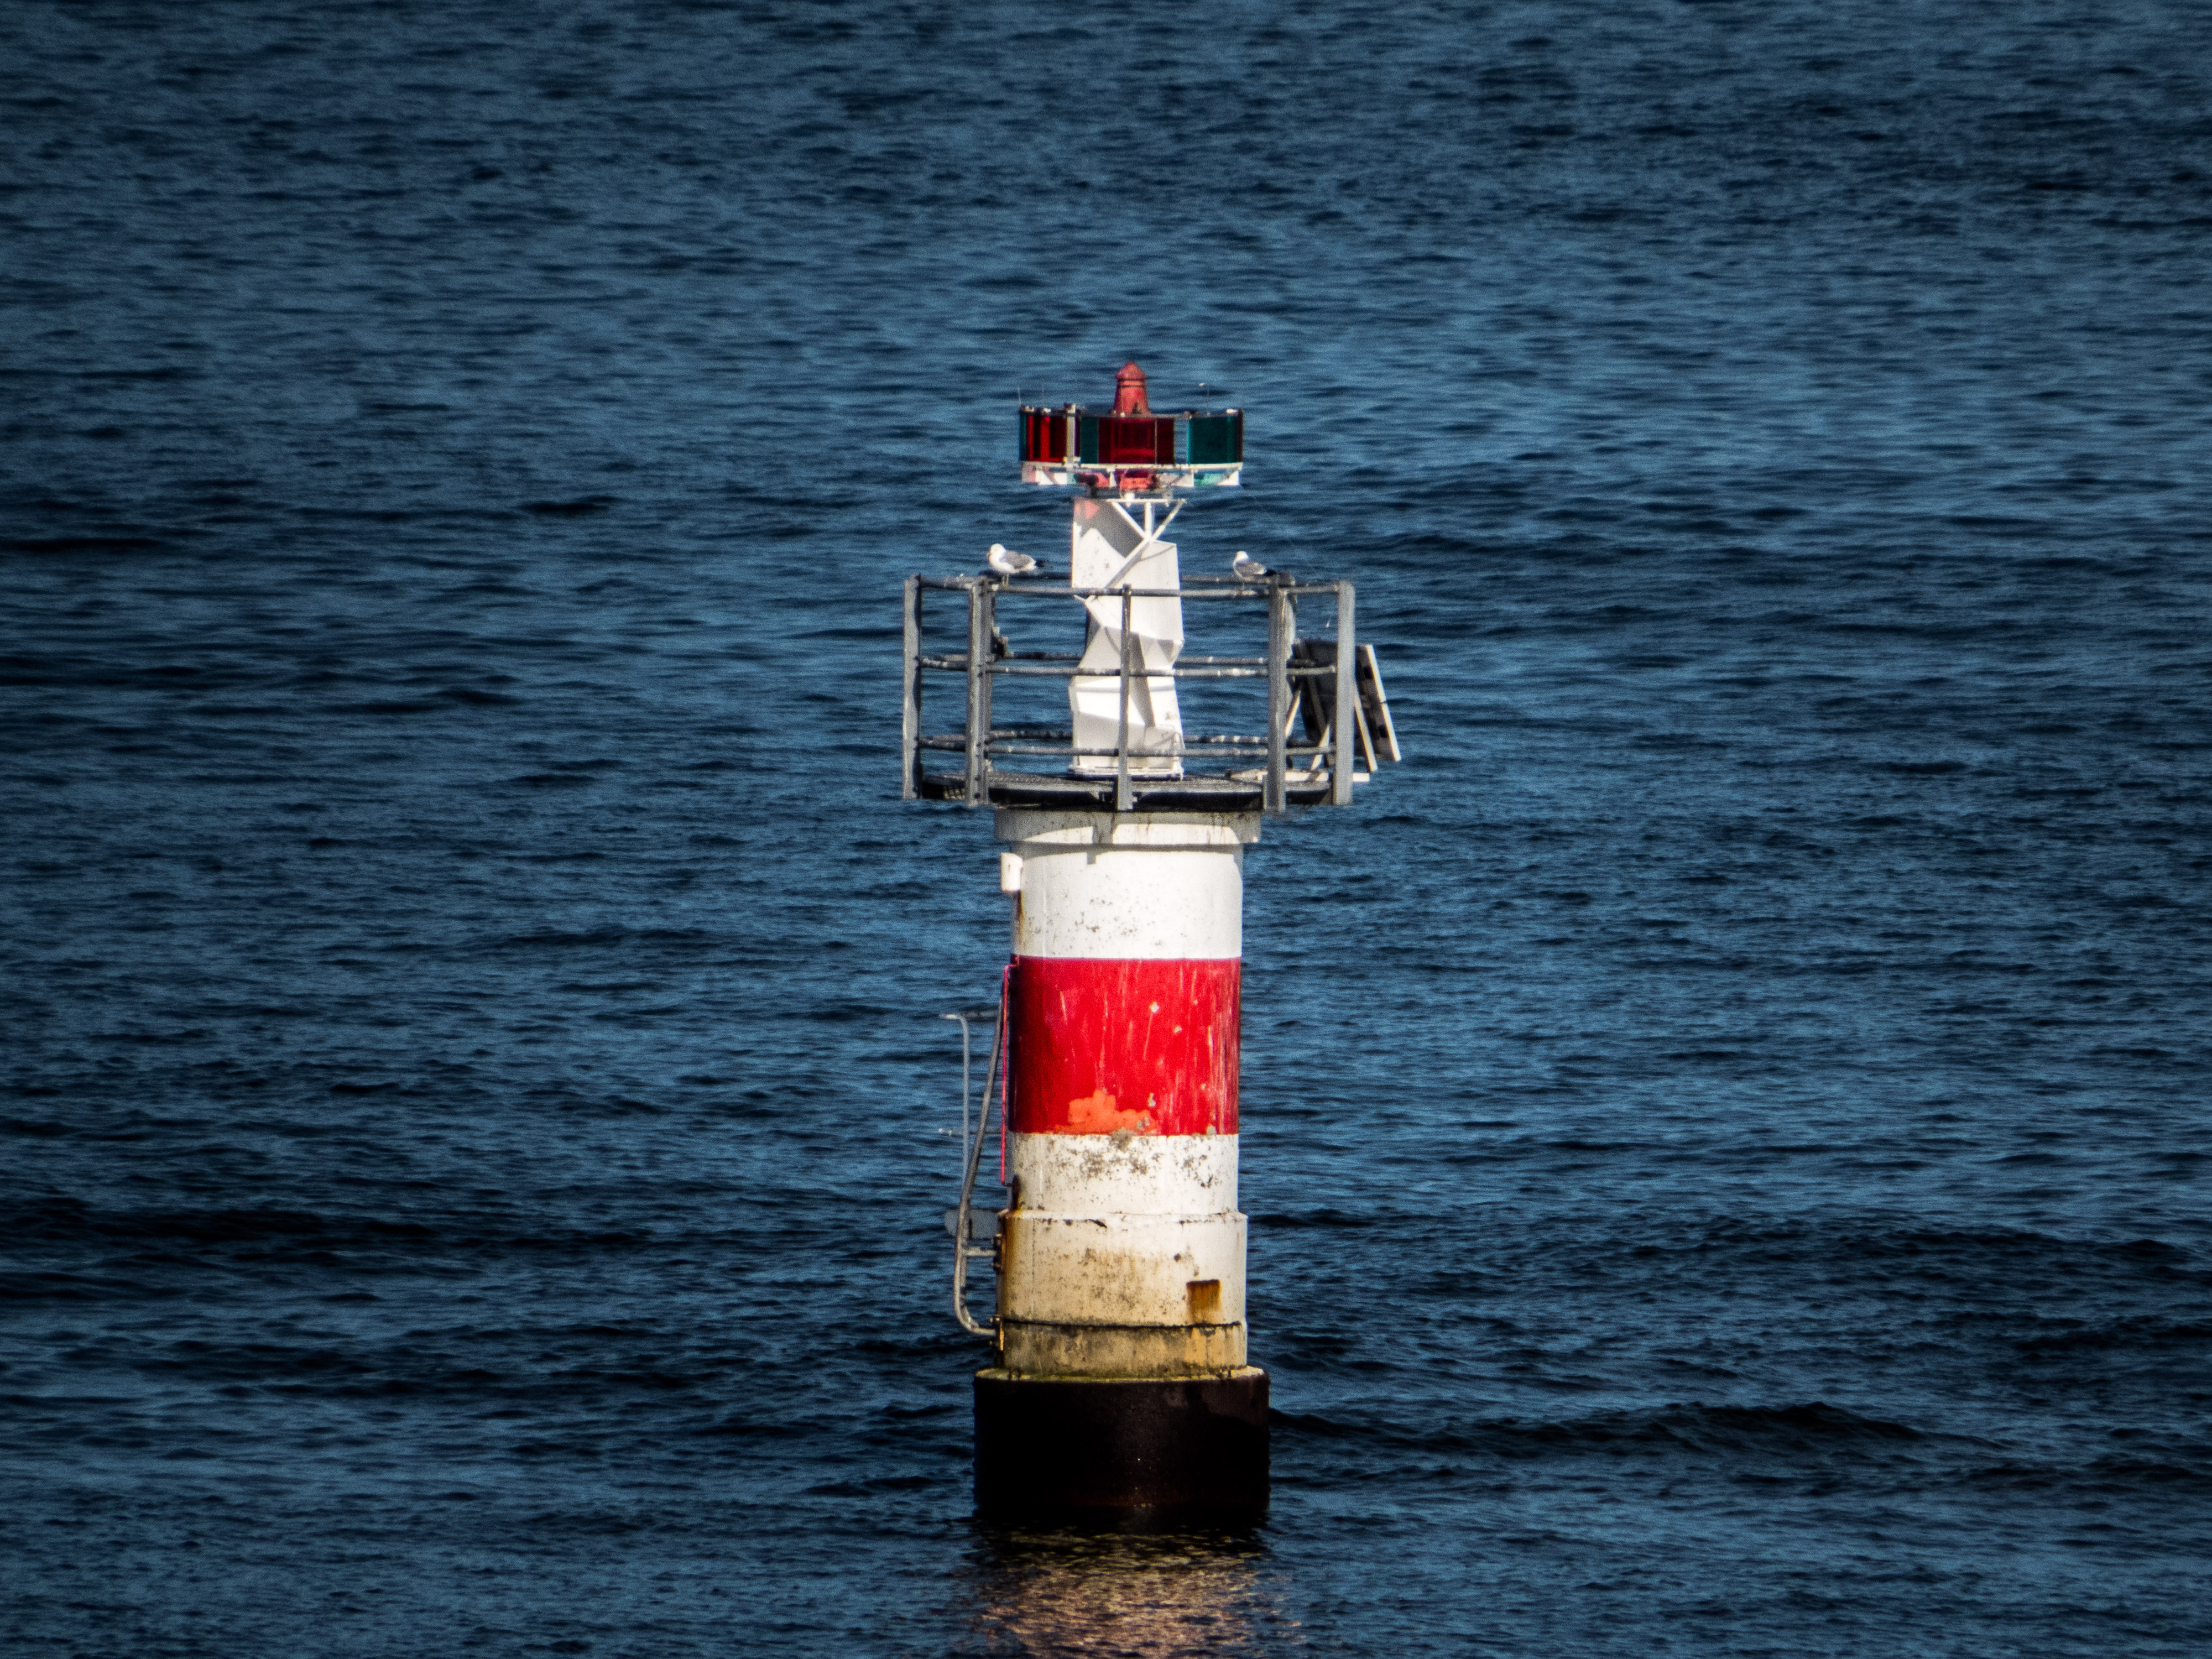 buoy, Port, Red, Sea, Ships, HQ Photo